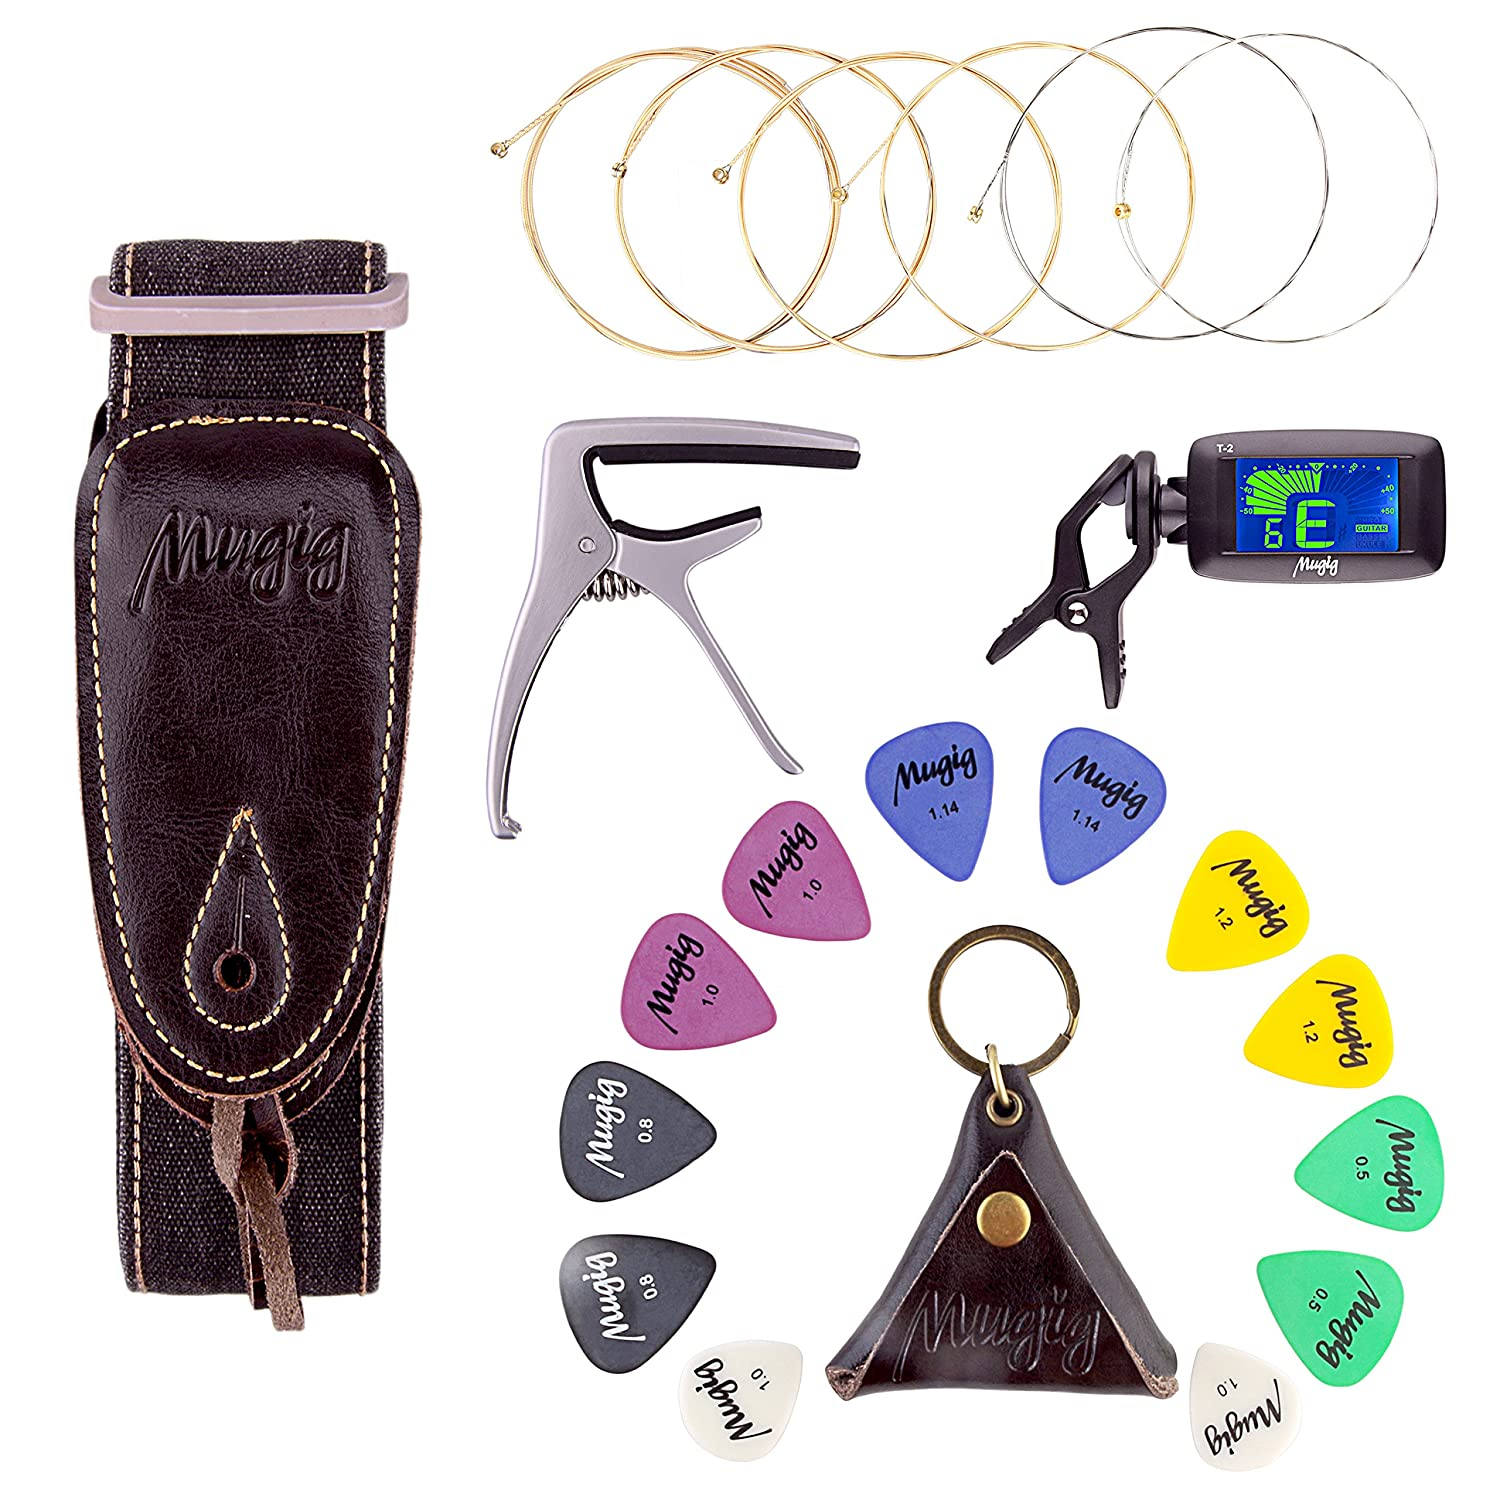 Mugig Guitar Accessories Kit with Tuner, Capo, Acoustic String, Straps and Picks Set with Leather Package JC-1